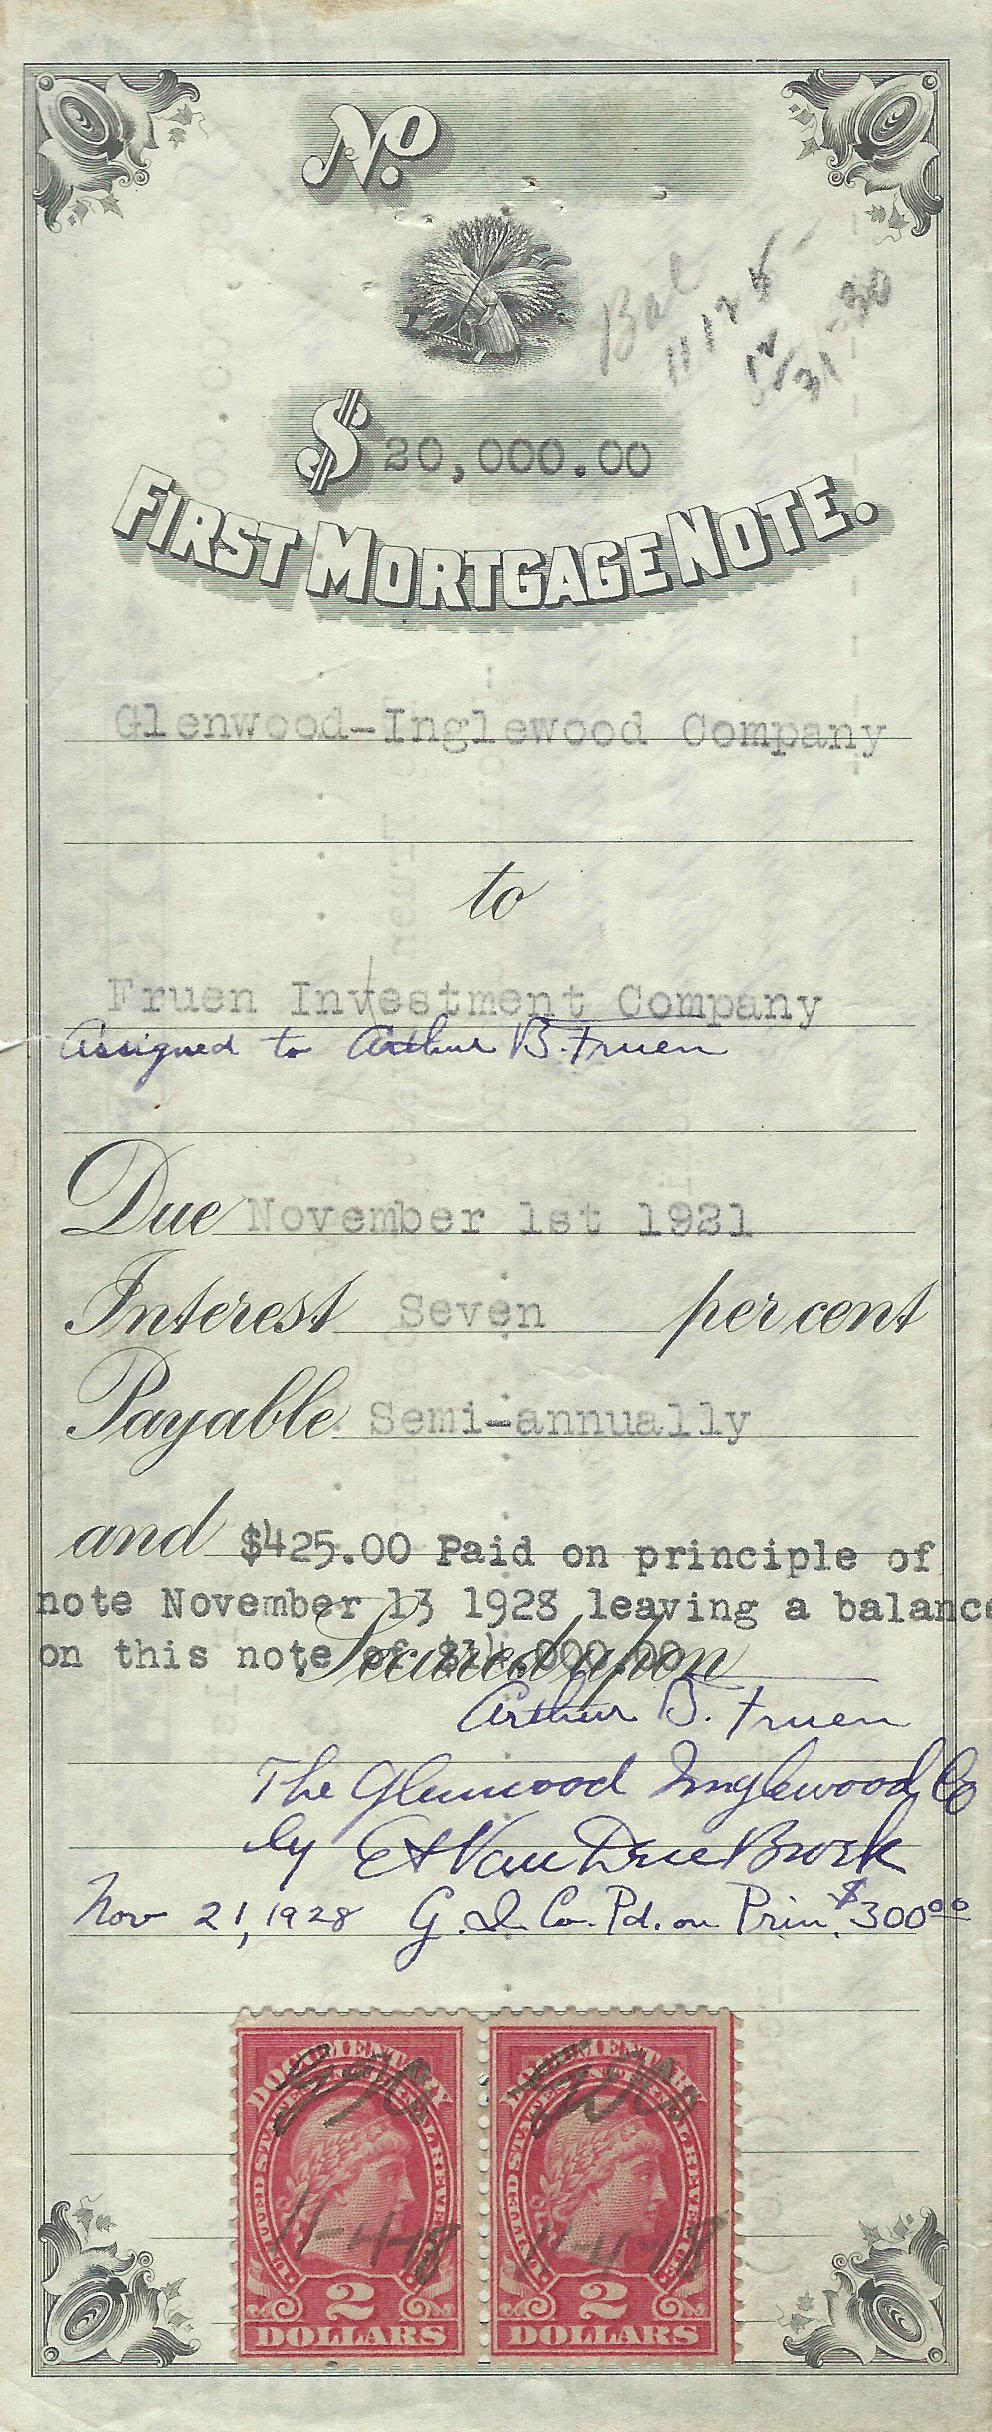 The Glenwood-Inglewood Company purchased the propertry from the Fruen Investment Company for $20,000 in 1921.